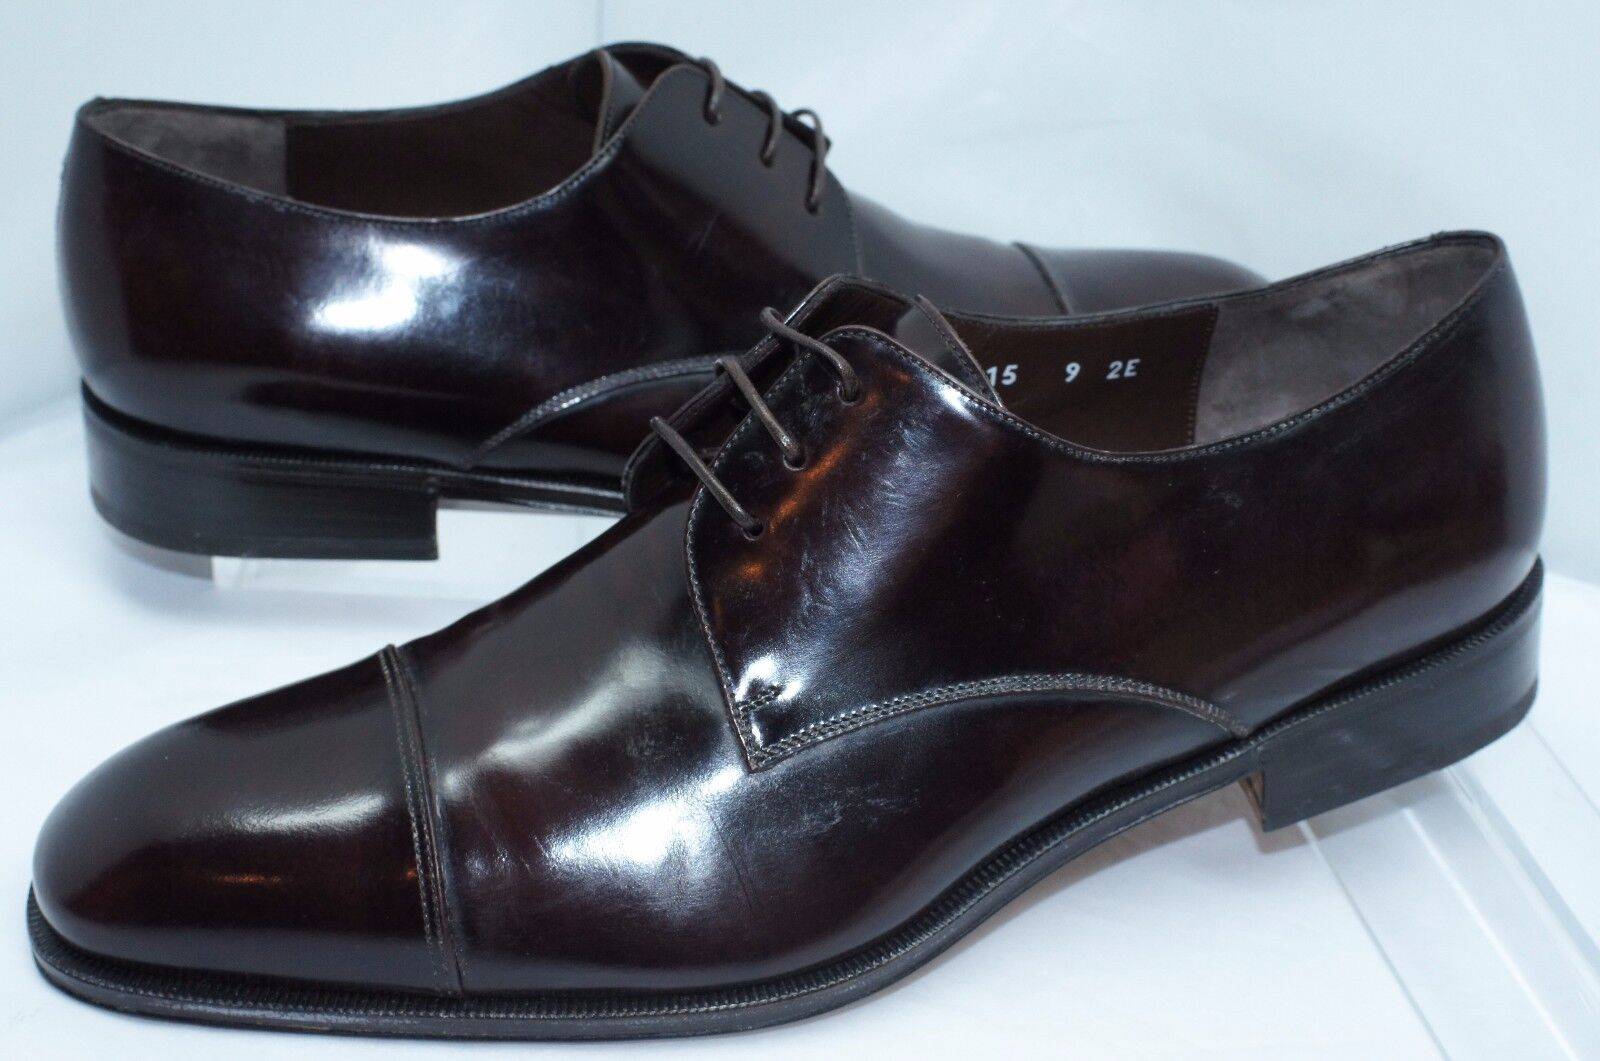 Shoes Size 9 EE Oxfords Lace Up Dress